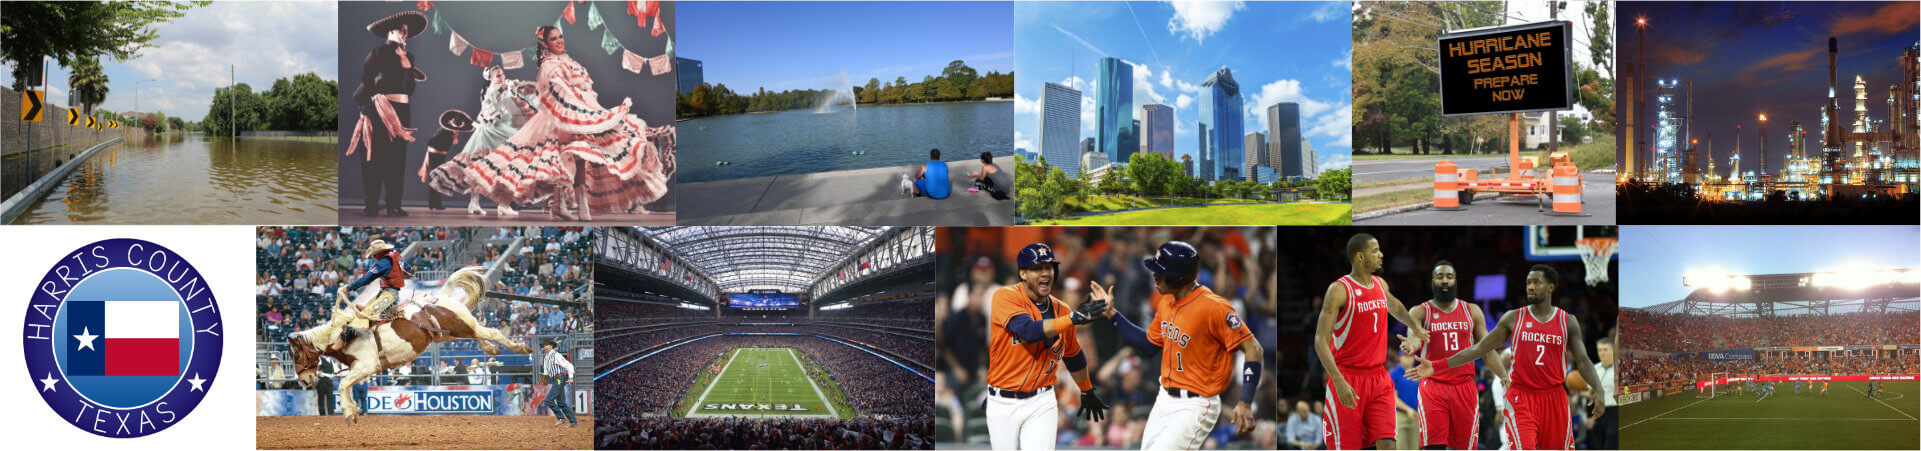 Harris County Professional Sports Teams